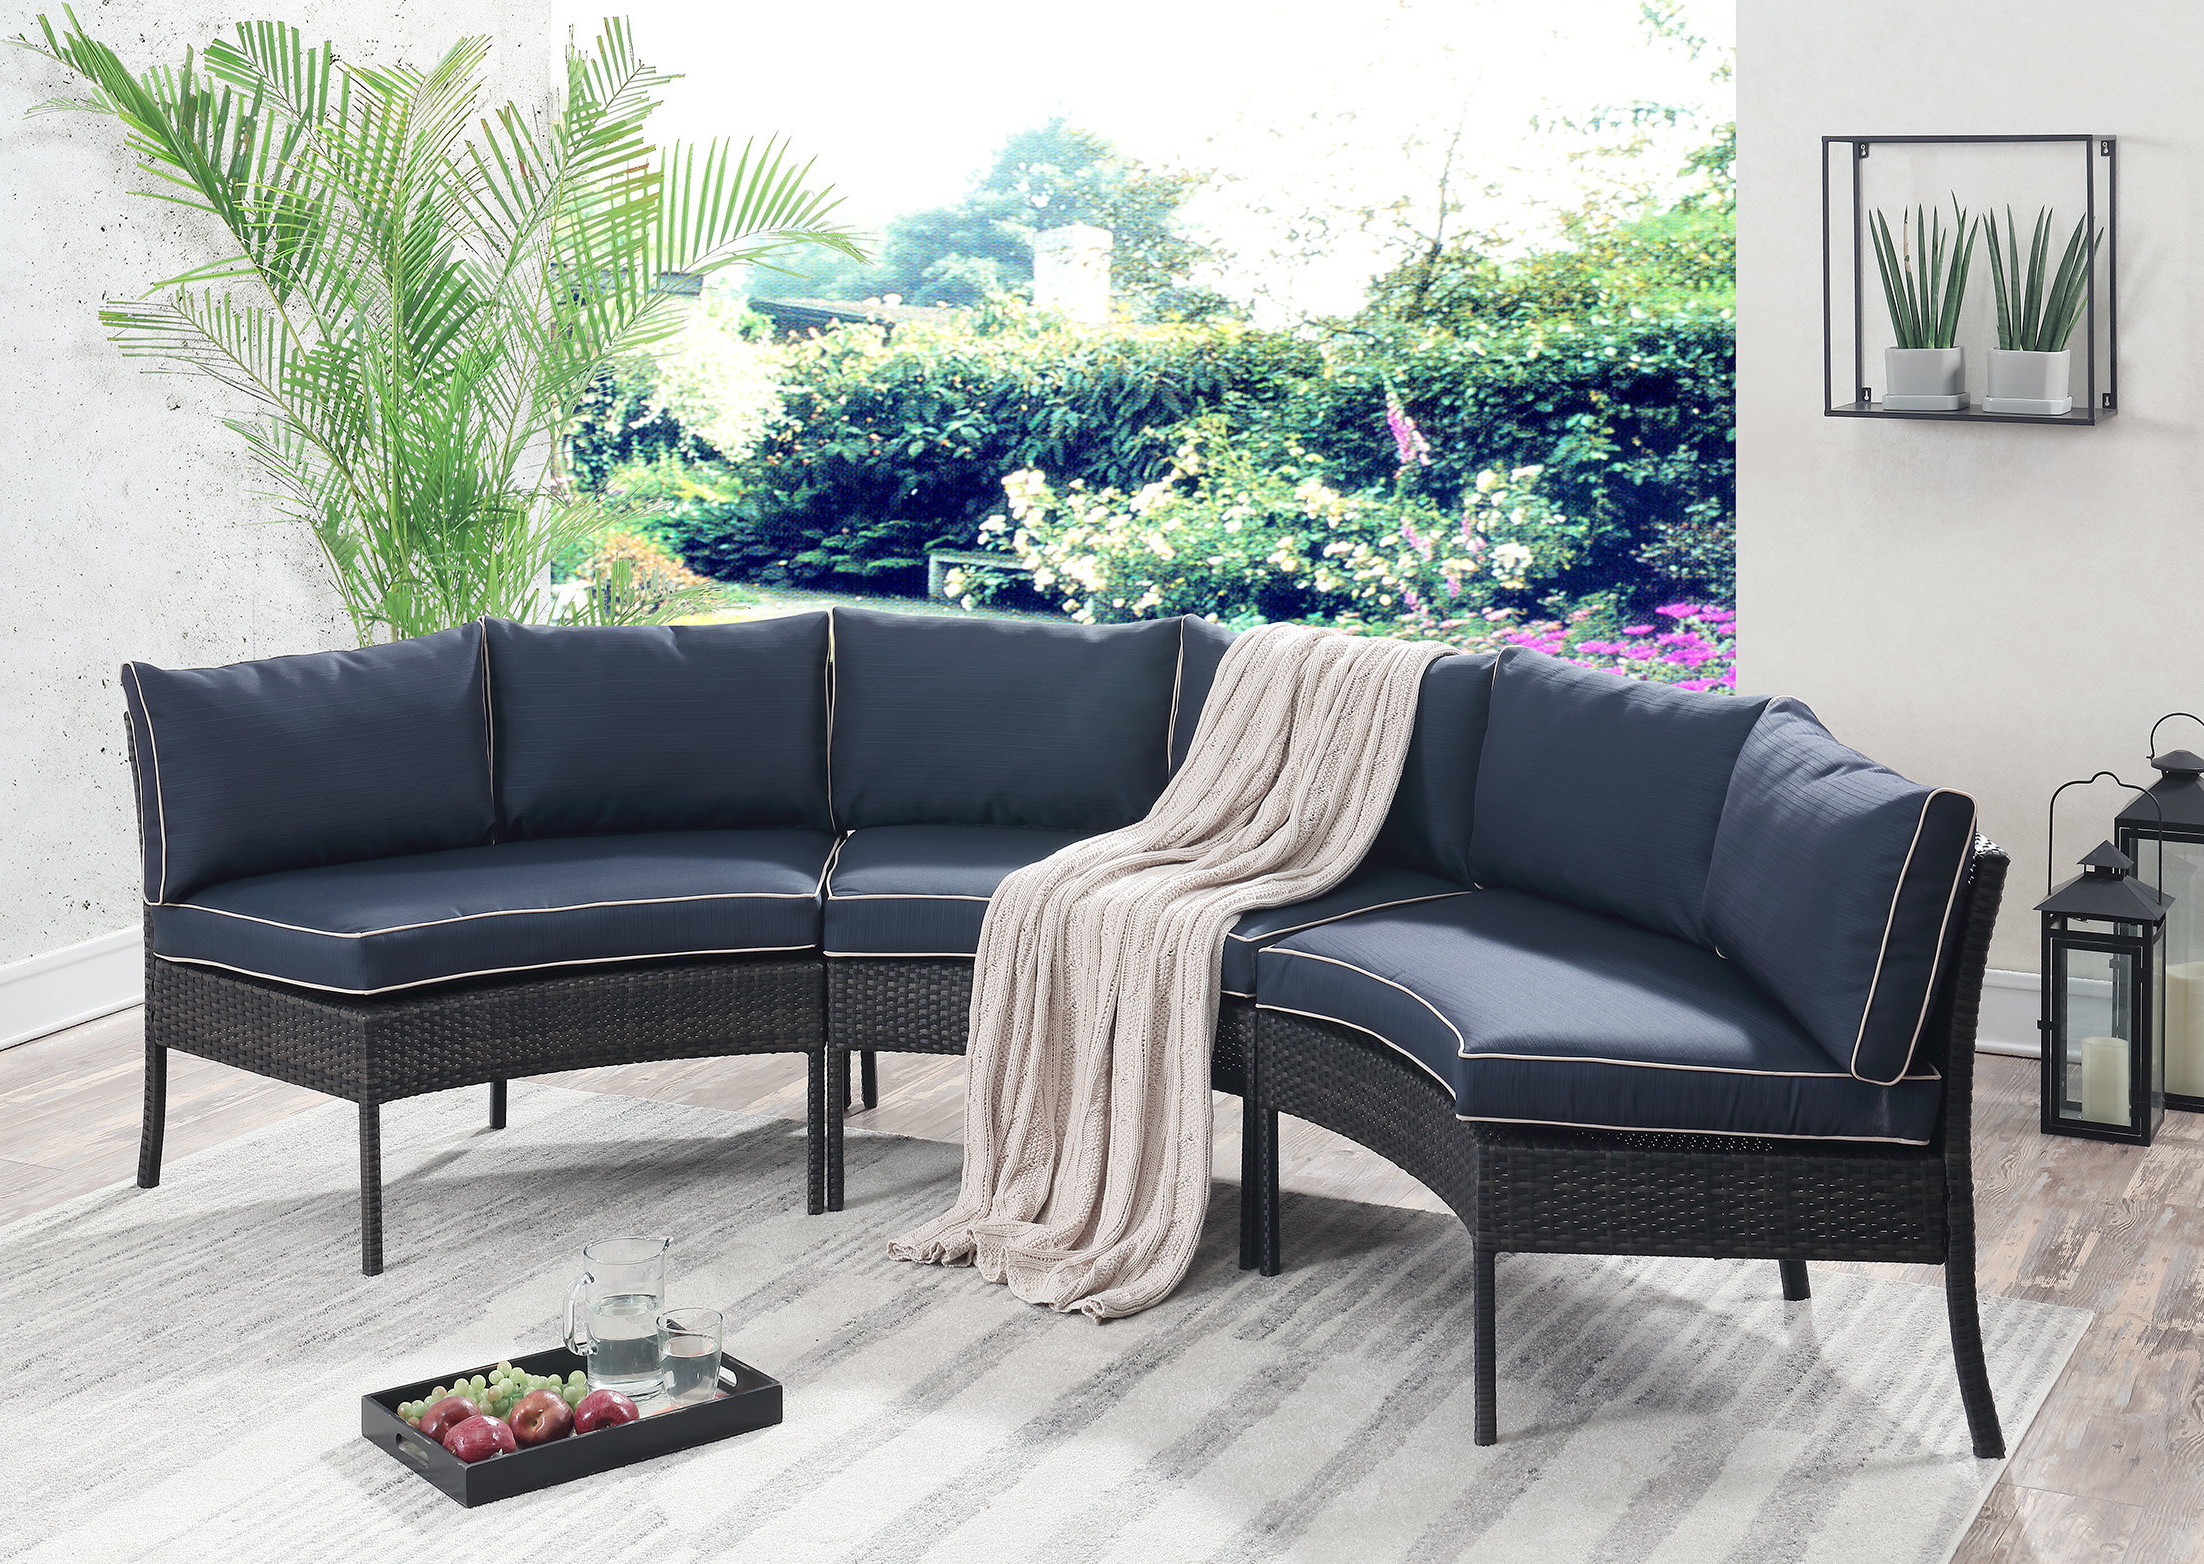 Latest Purington Circular Patio Sectional With Cushions Pertaining To Stockwell Patio Sofas With Cushions (View 6 of 20)